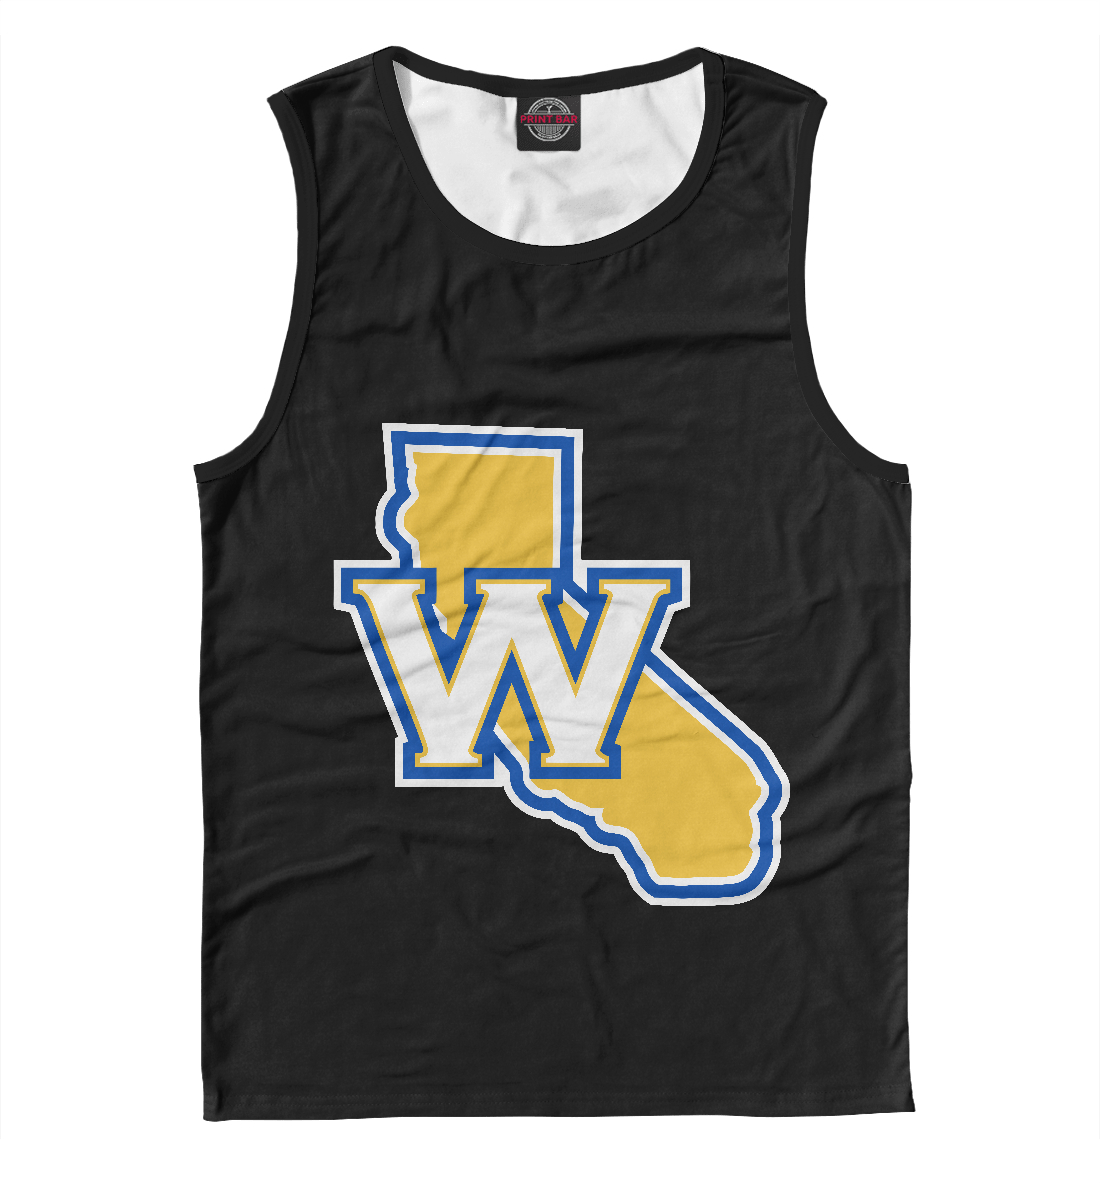 Купить Golden State Warriors, Printbar, Майки, NBA-592802-may-2